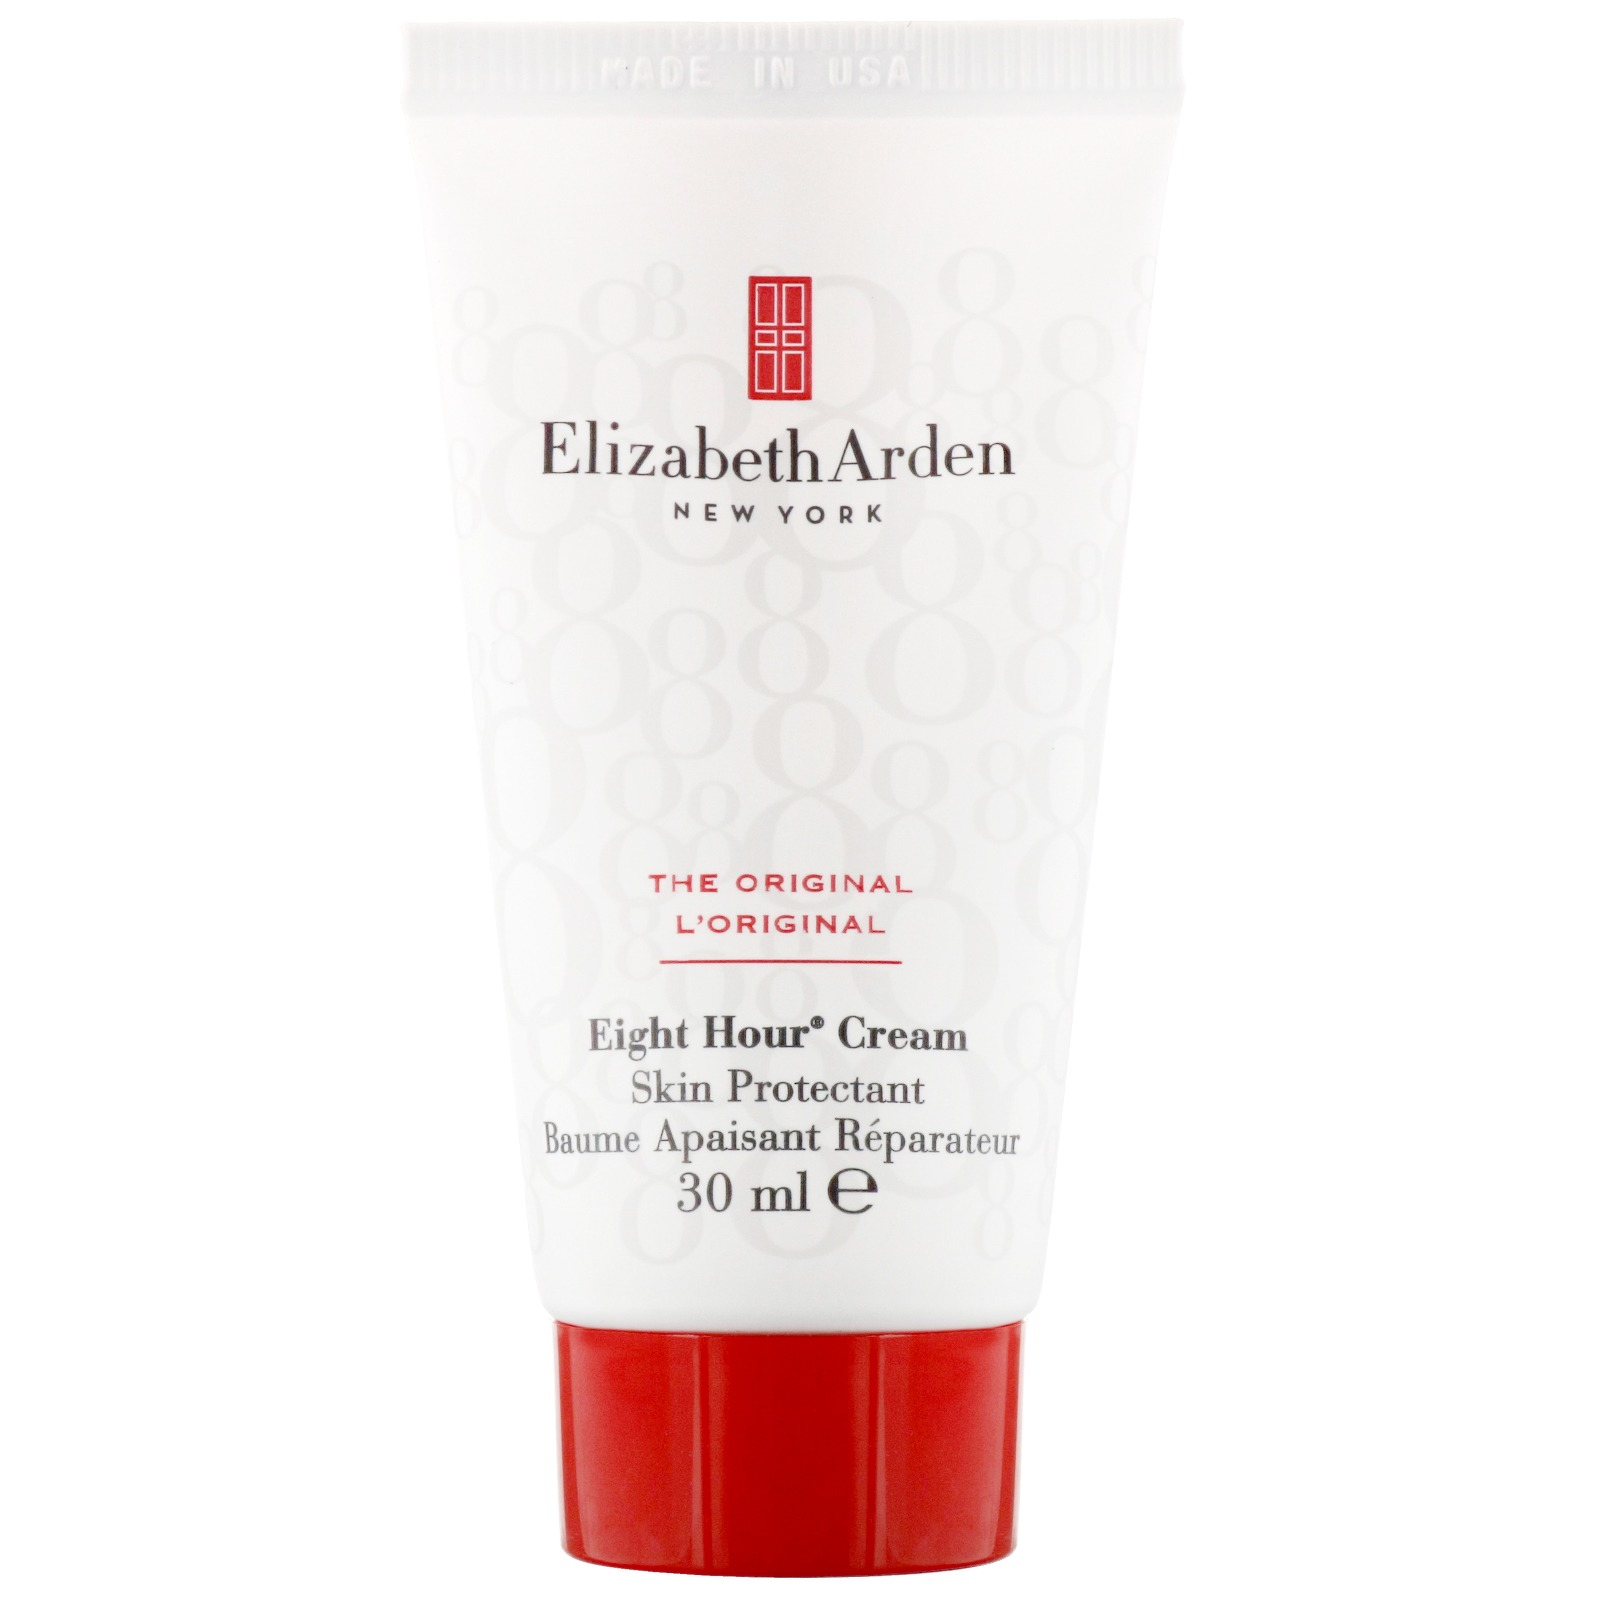 Elizabeth Arden Moisturisers Eight Hour Skin Protectant Cream 30ml / 1 fl.oz.